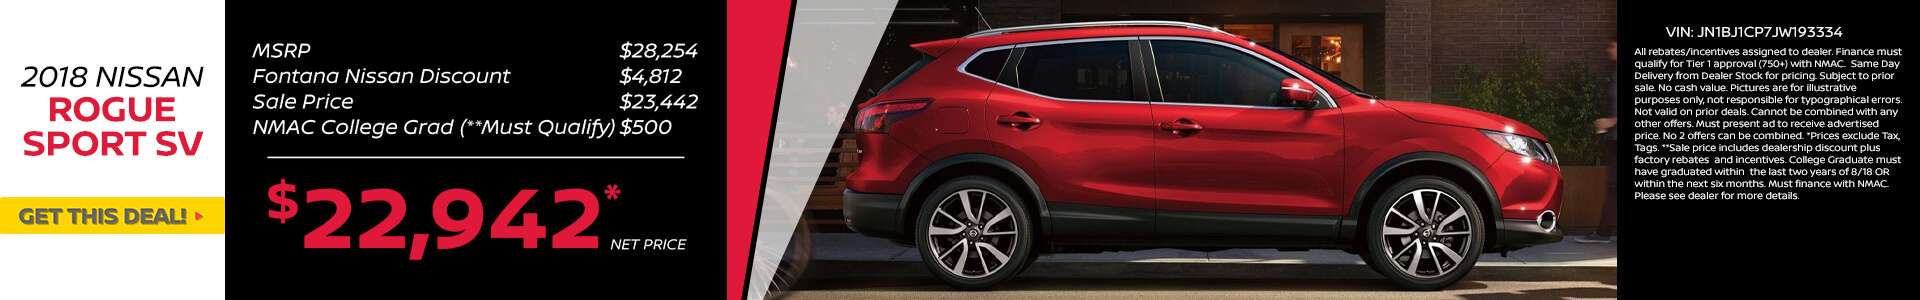 Nissan Rogue Sport $22,942 Purchase